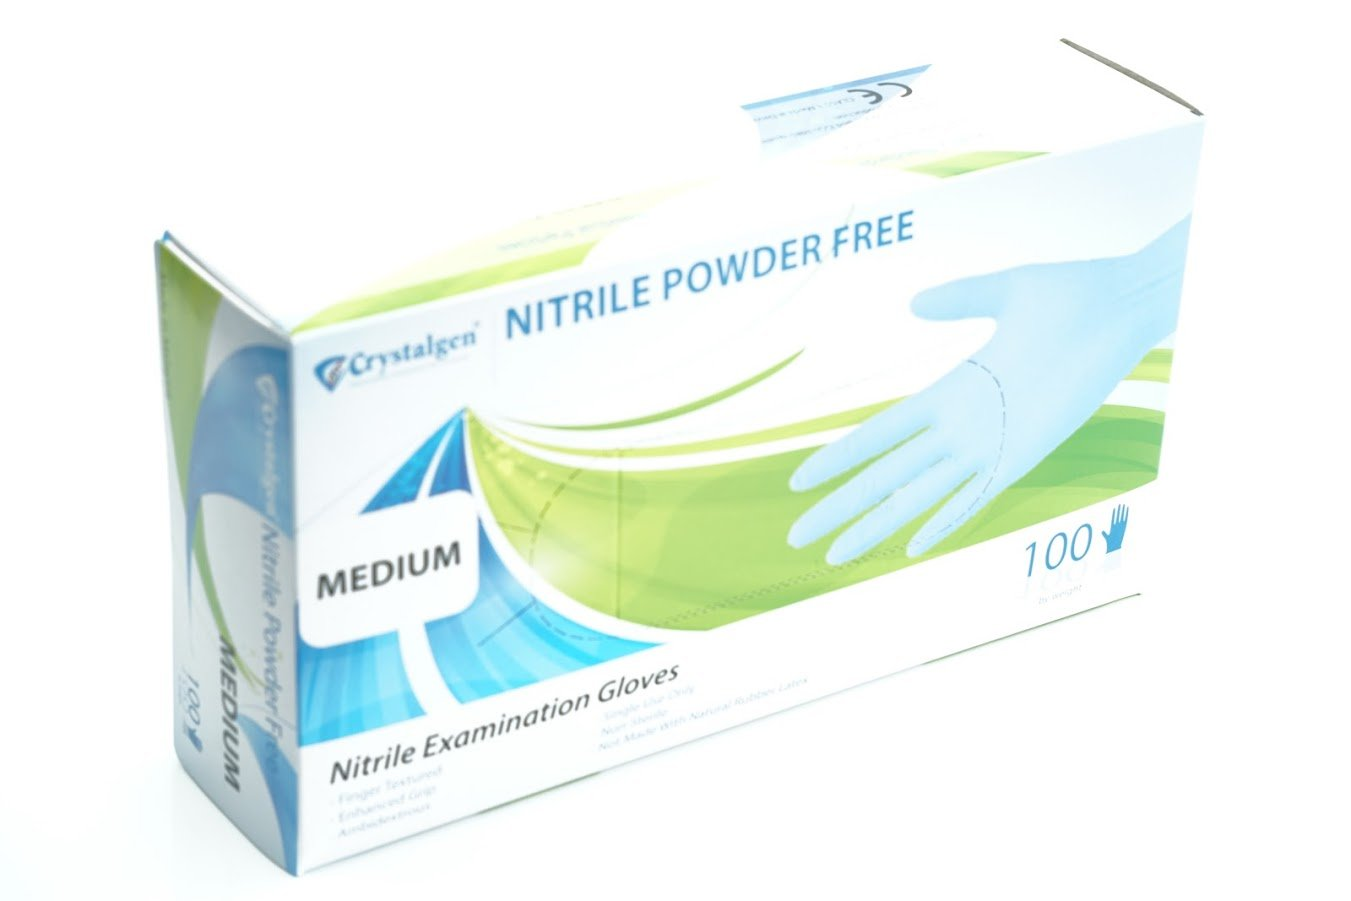 Crystalgen - Powder Free Nitrile Gloves